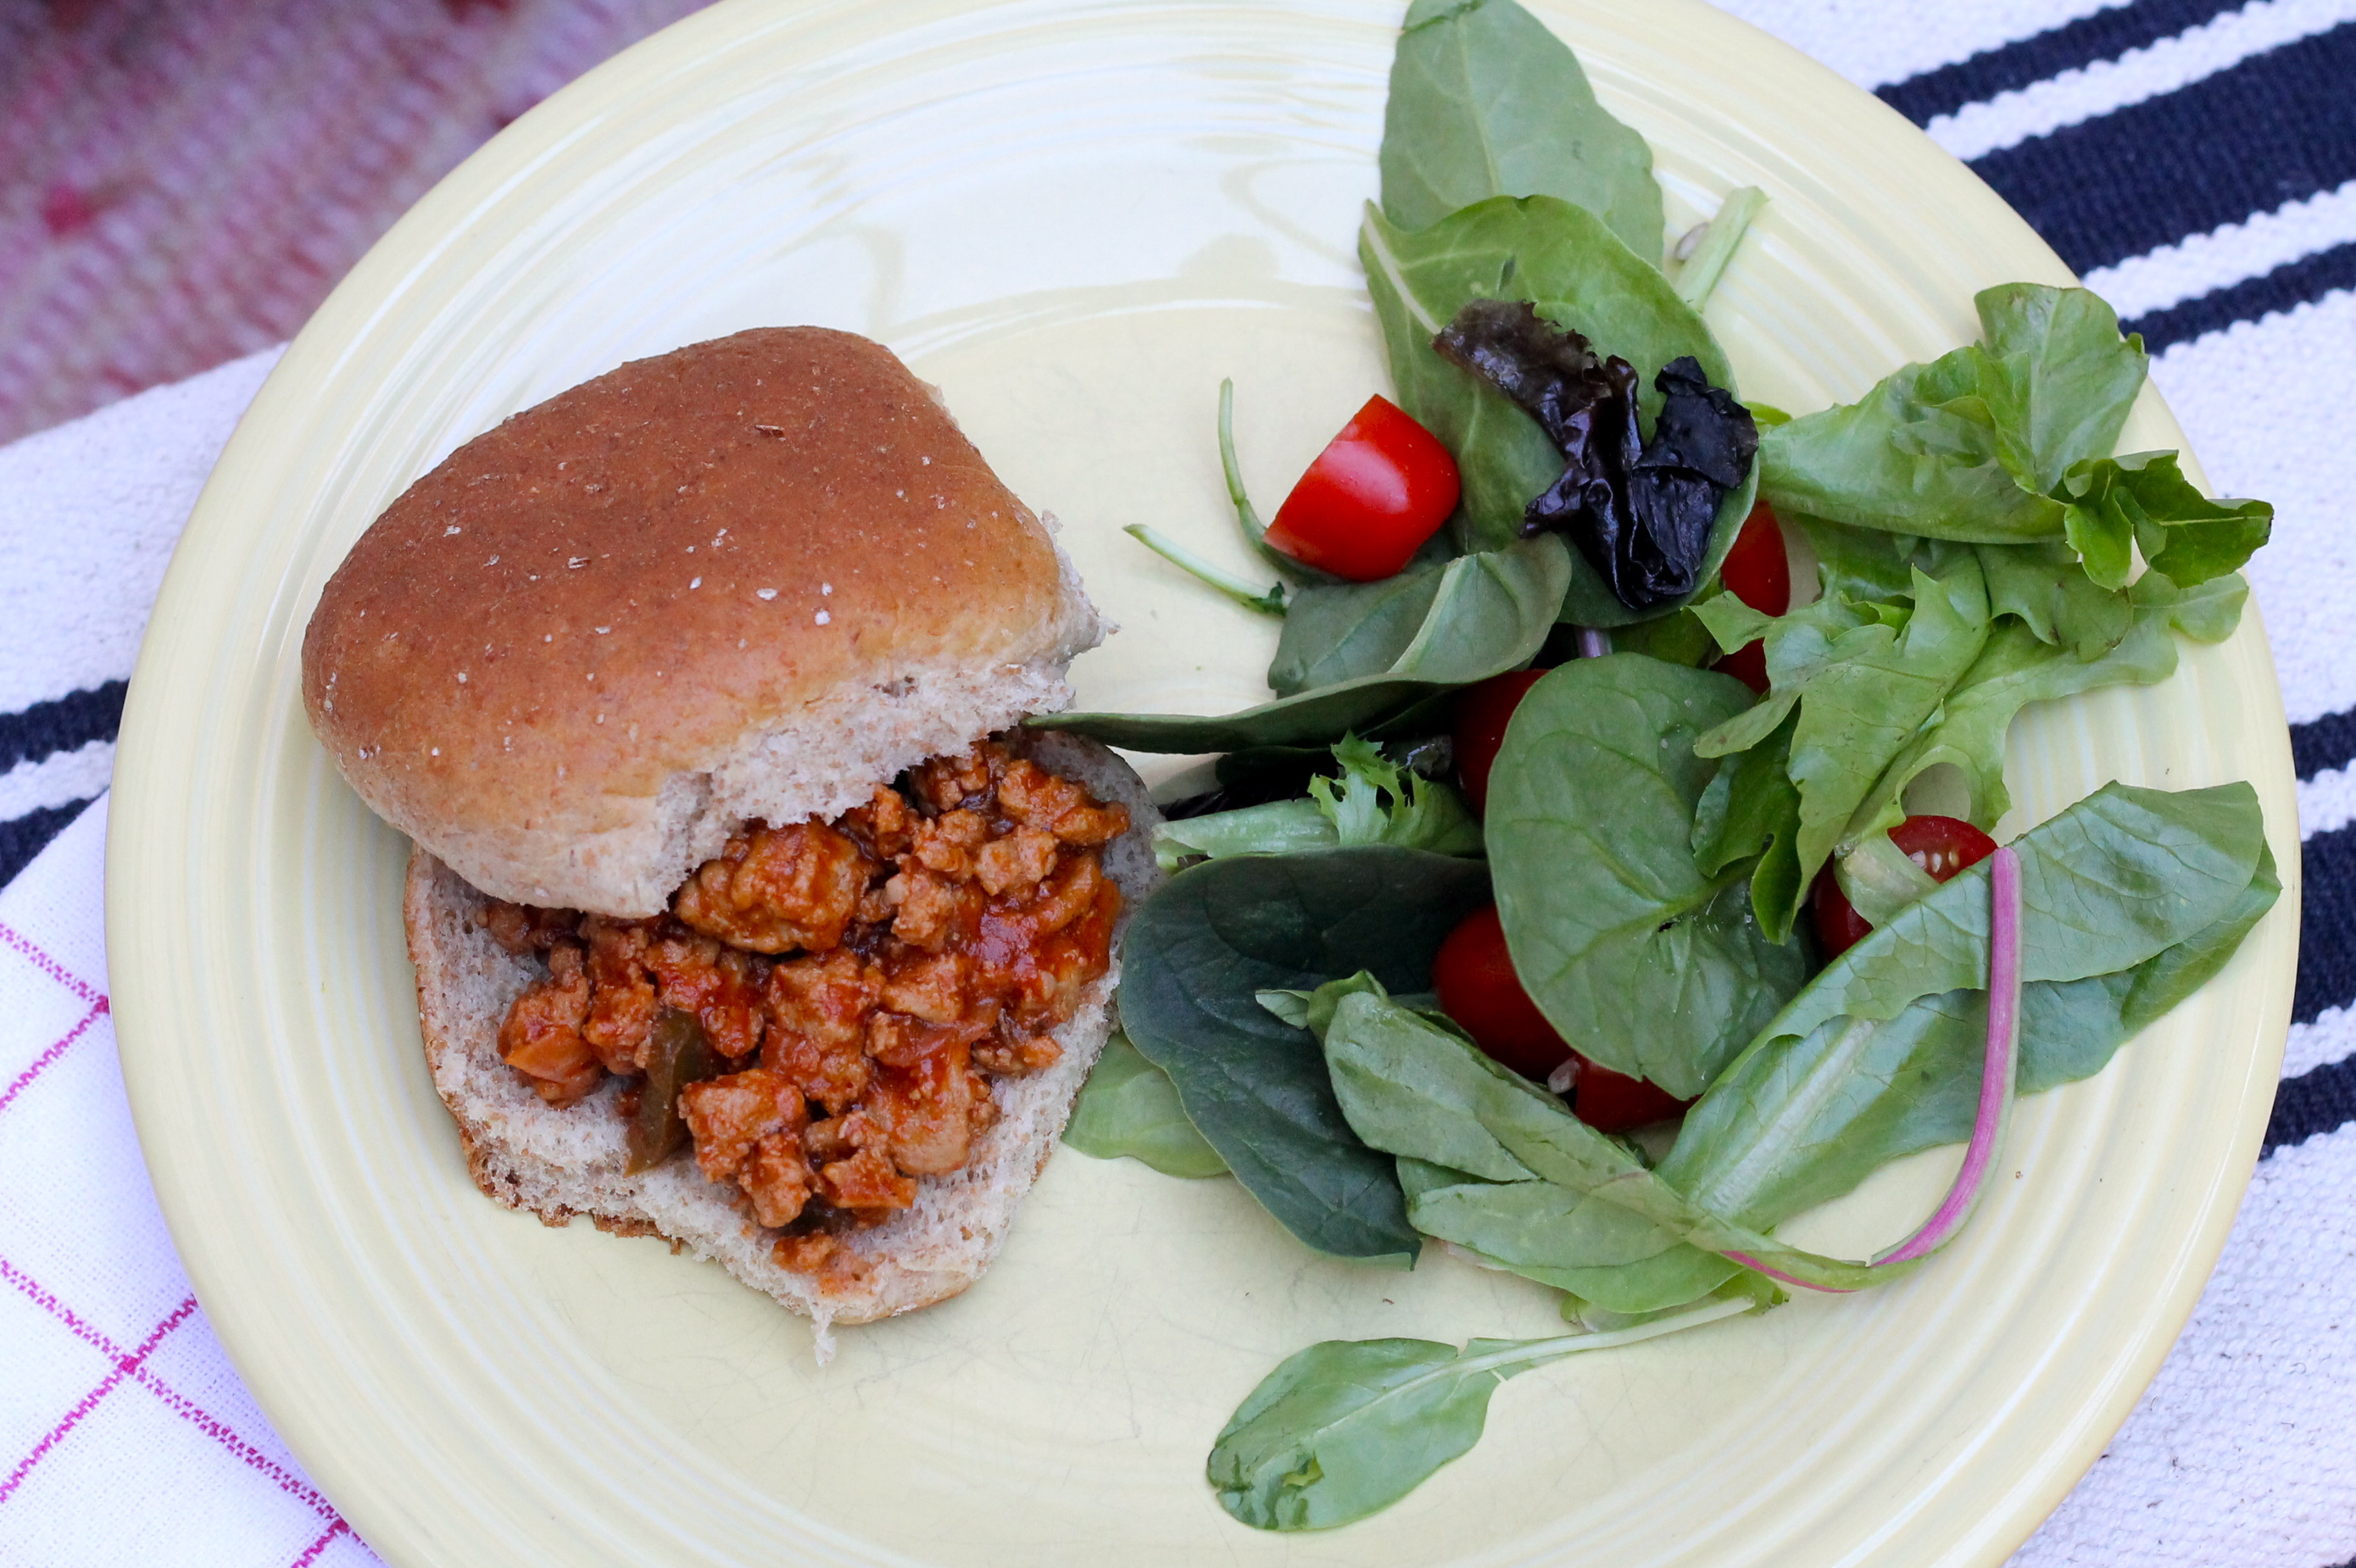 IMG 1749 - Sloppy Joes for Tailgating